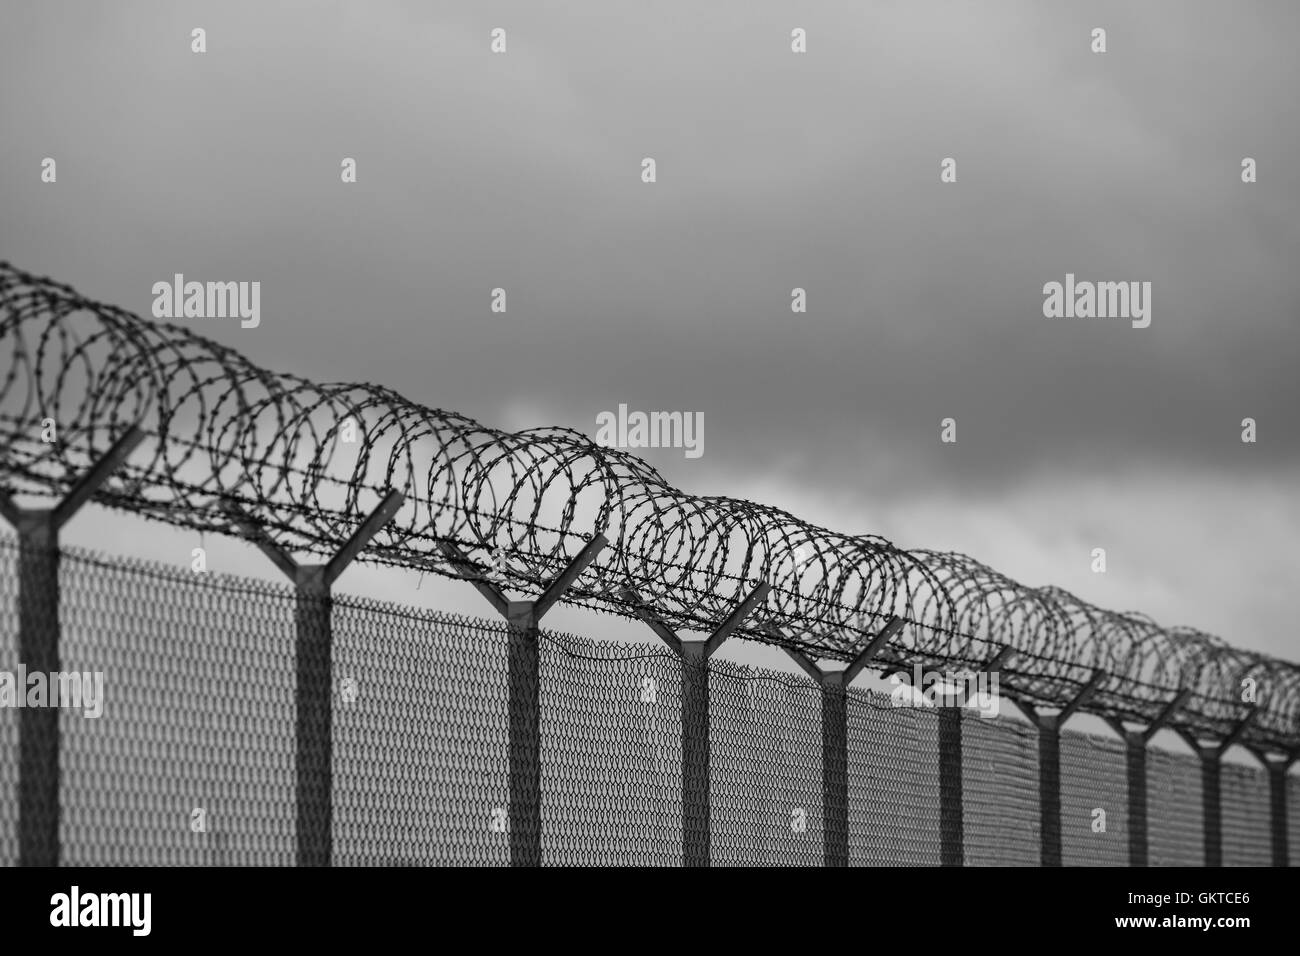 Barbed wire fence of restricted area - Stock Image